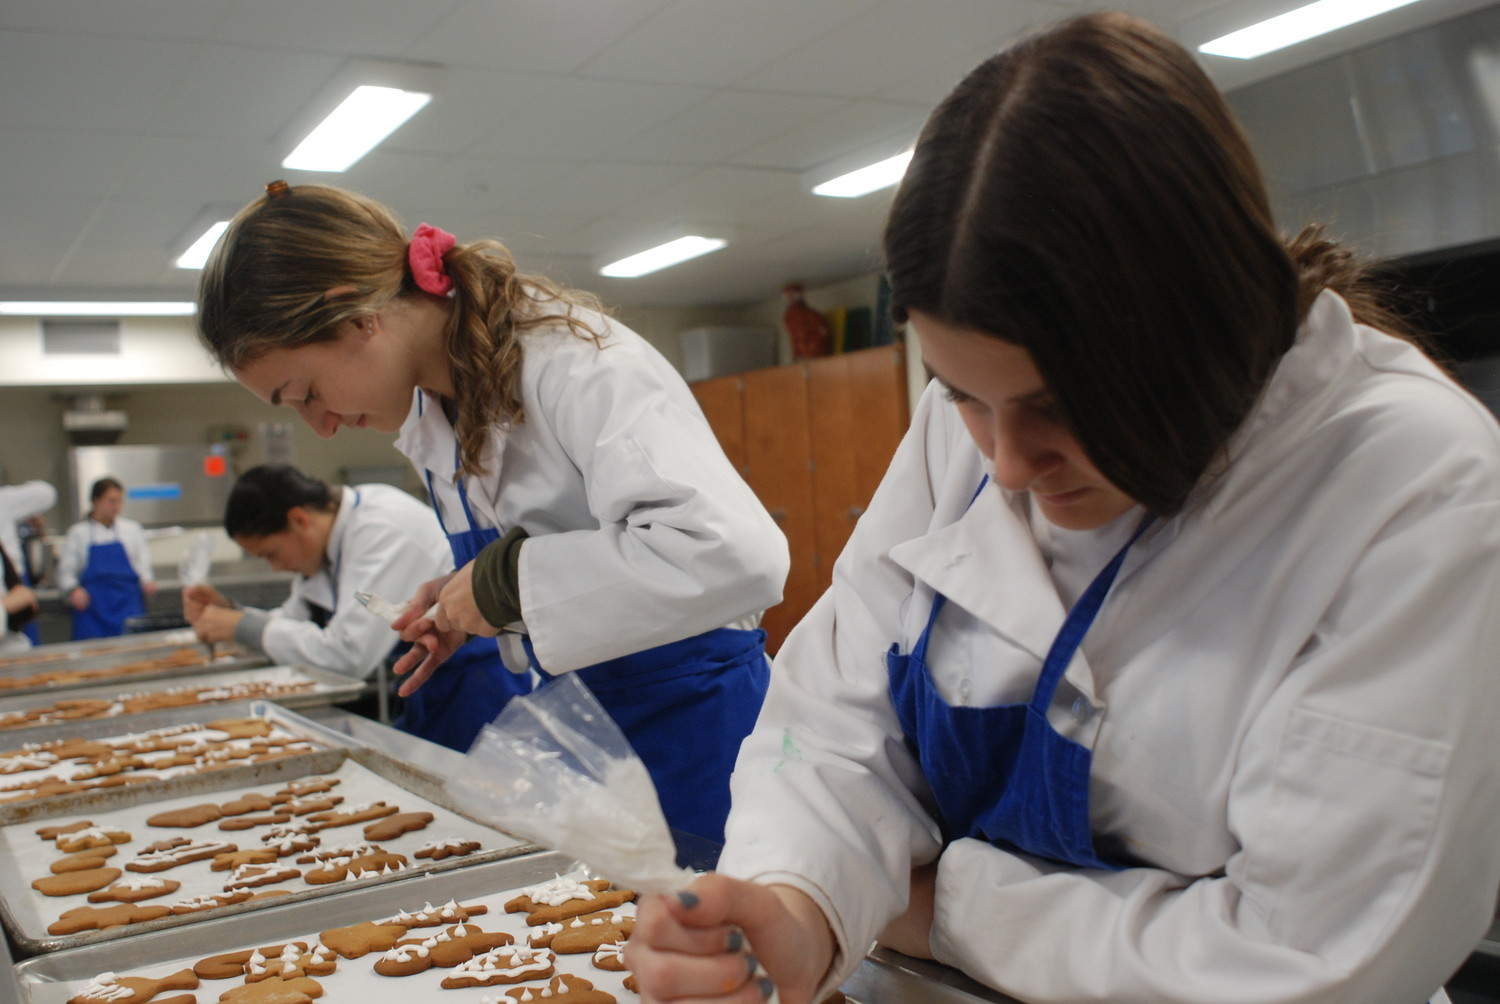 At Kennedy High School in Bellmore, 10th-graders Haylee Schwartz, left, and Sami Platt decorated gingerbread cookies as part of the Bellmore-Merrick Central School District's Culinary Arts and Hospitality Program.